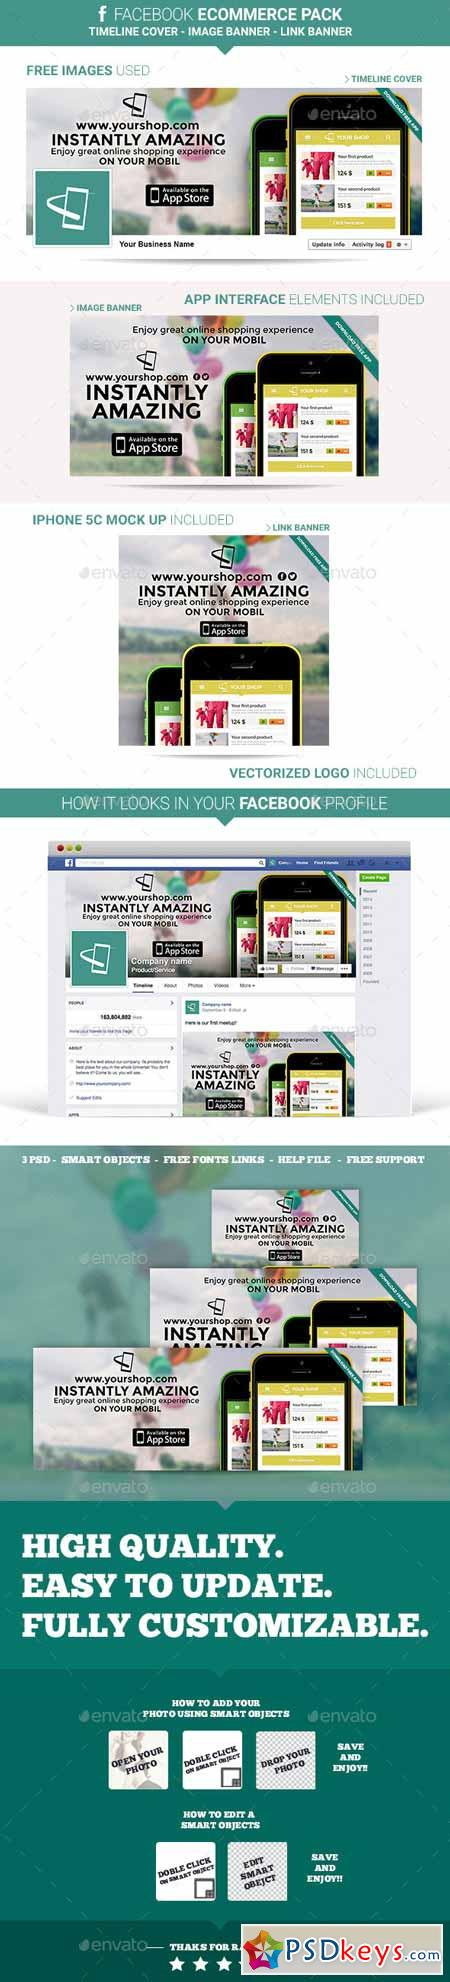 Facebook Ecommerce Pack 9874593